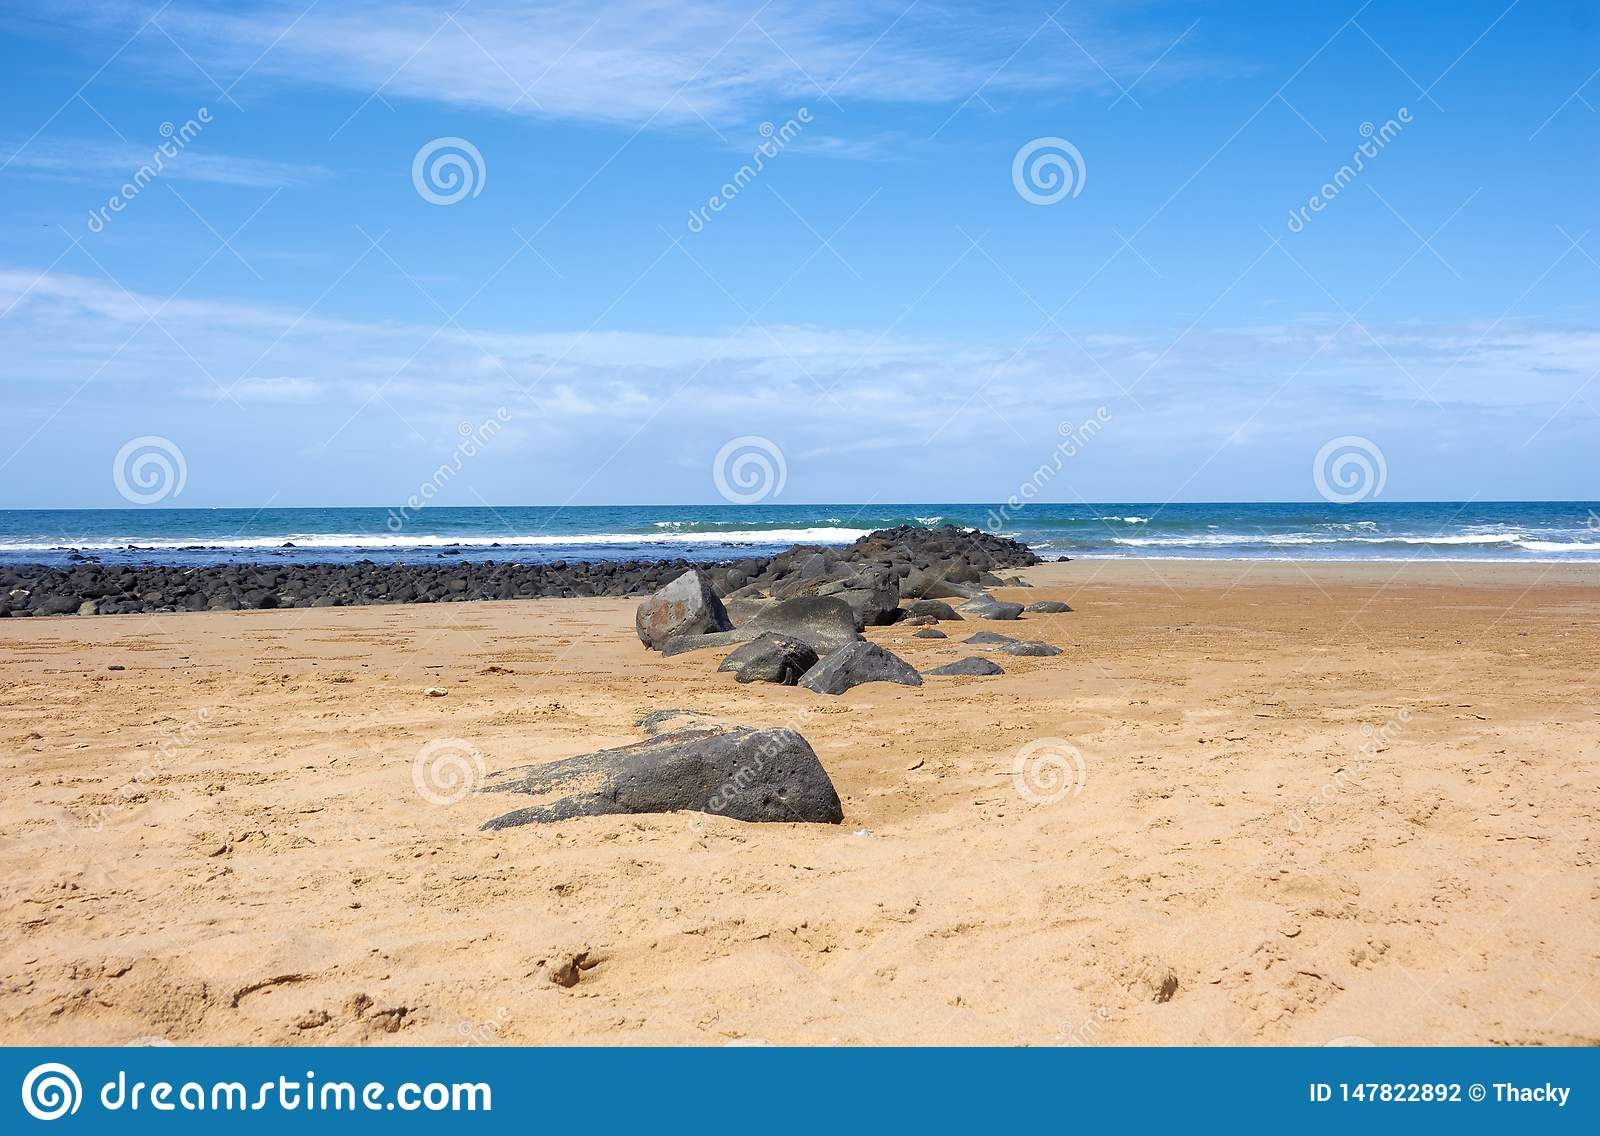 Sandy beach with rocks by the surf